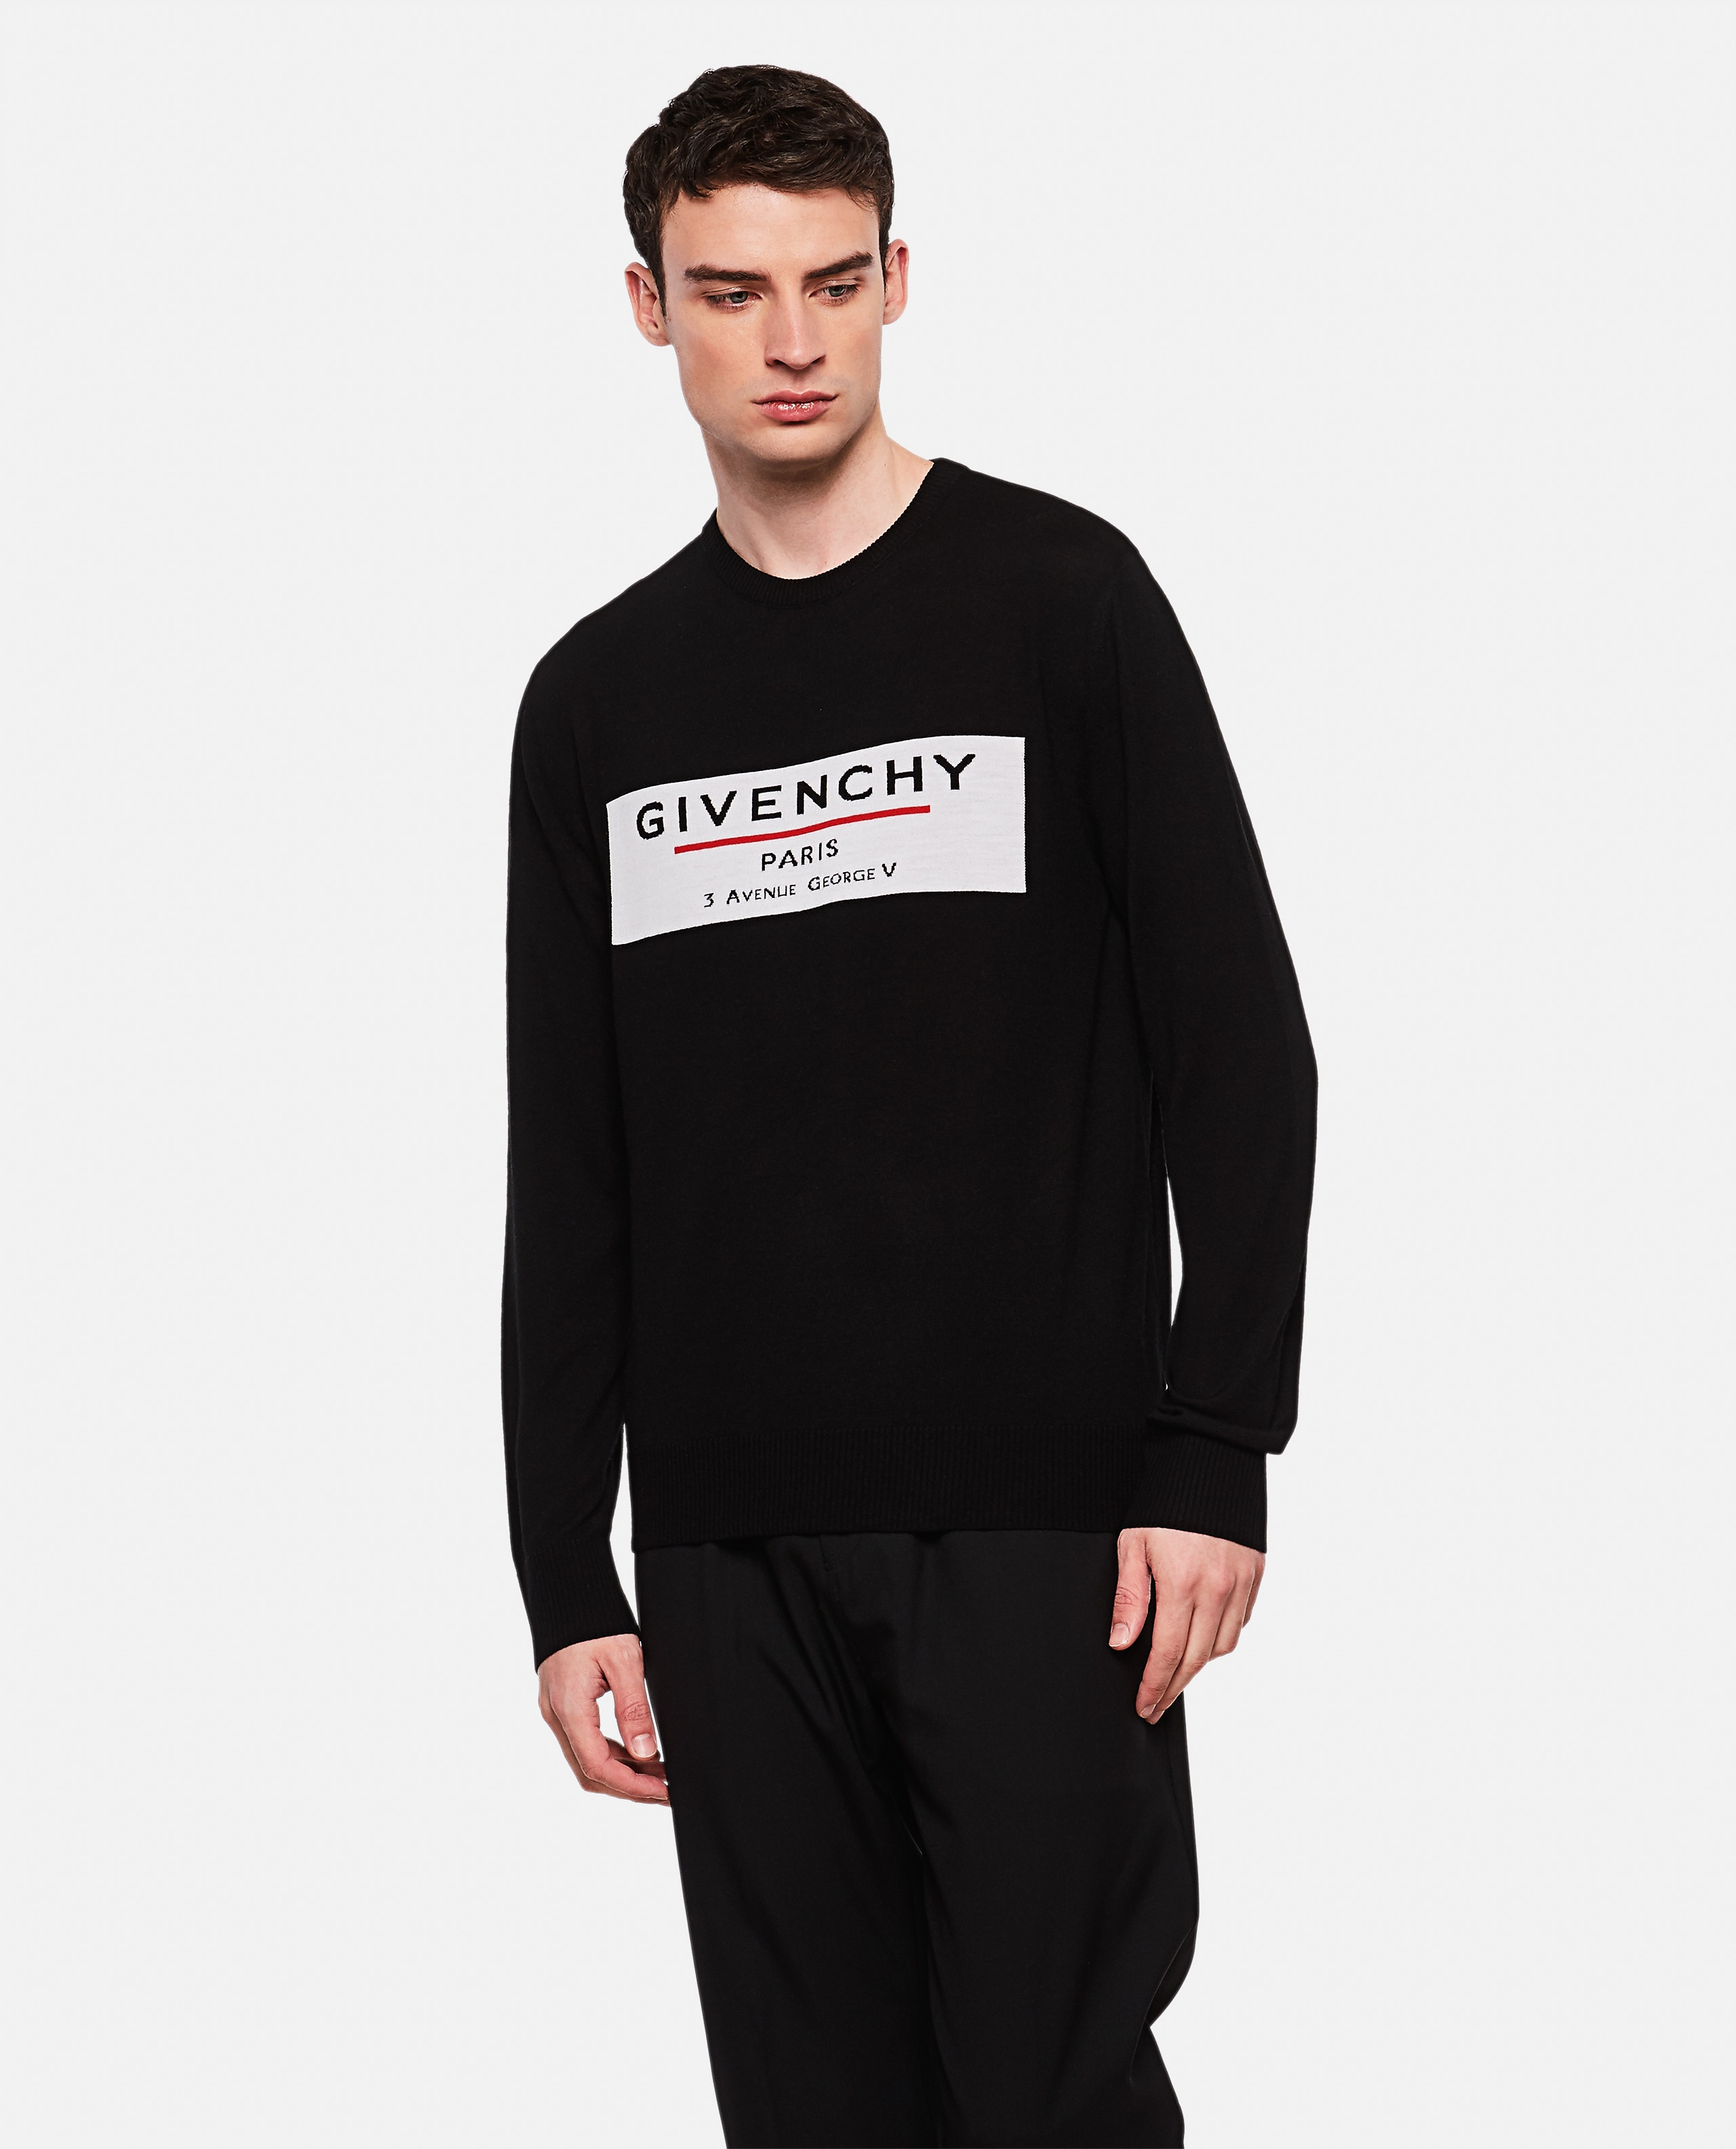 Crew neck wool pullover Men Givenchy 000226520033493 1